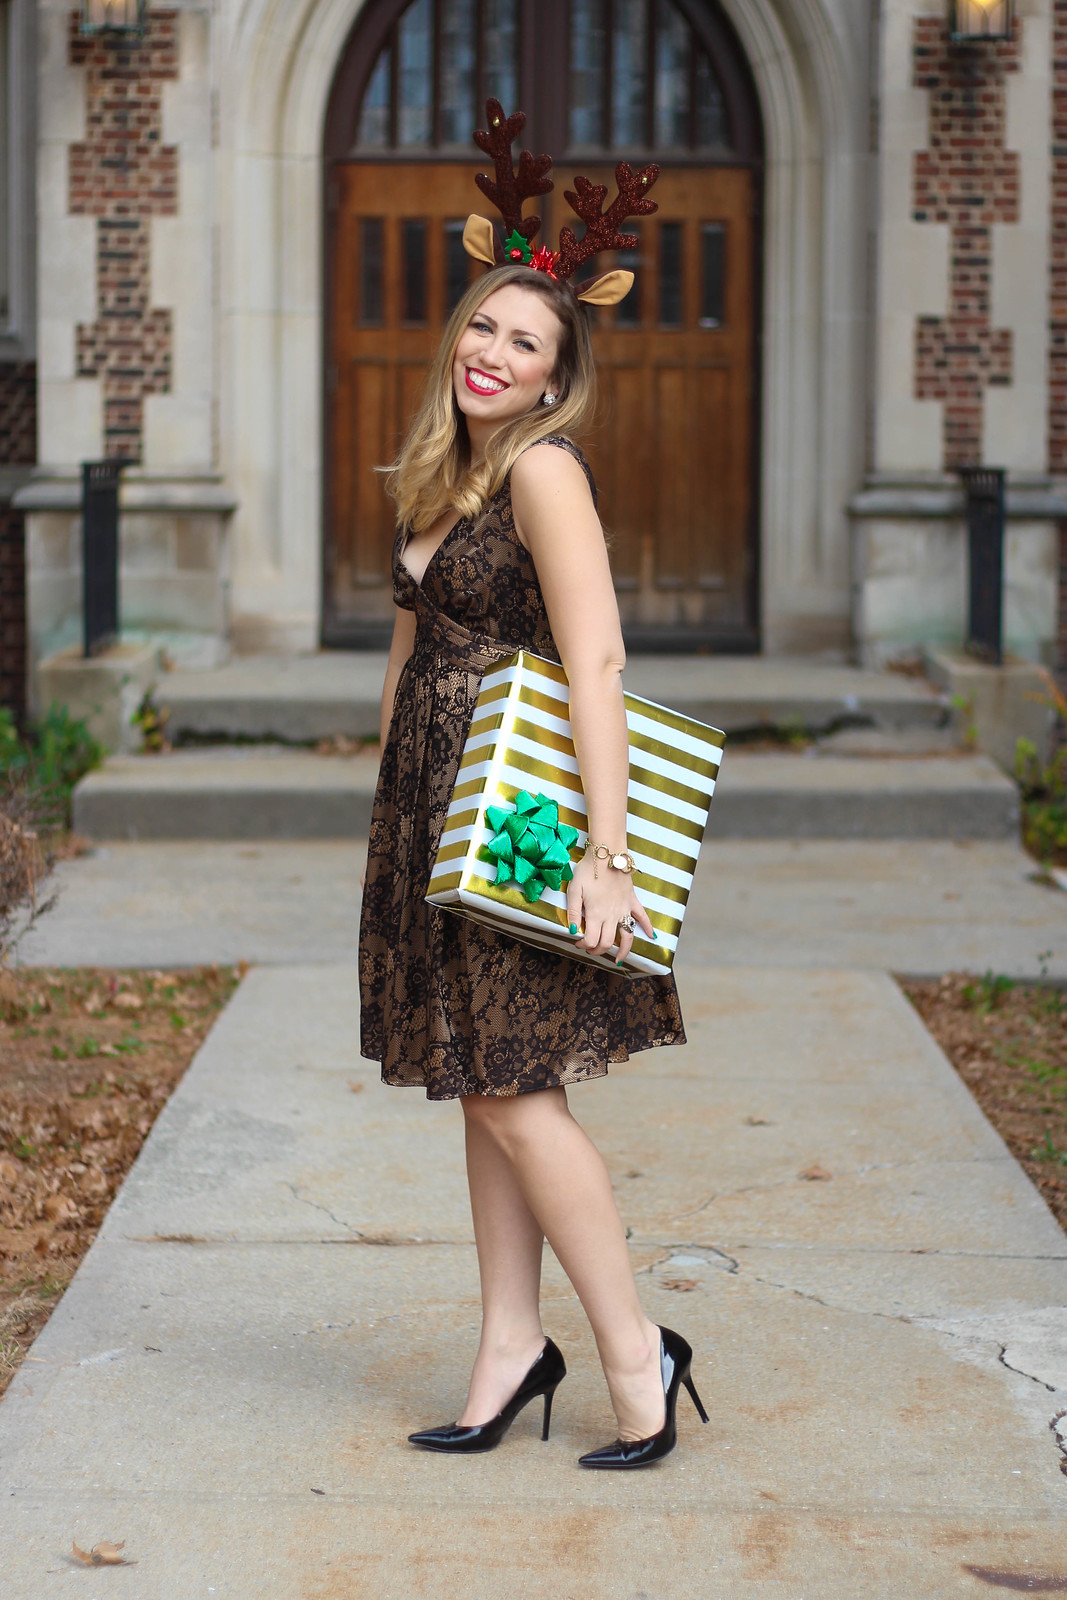 Black & Gold Lace Holiday Dress | Reindeer Ears | Christmas Presents | A Look Back at 10 Years of Blogging Living After Midnite Blogger Jackie Giardina